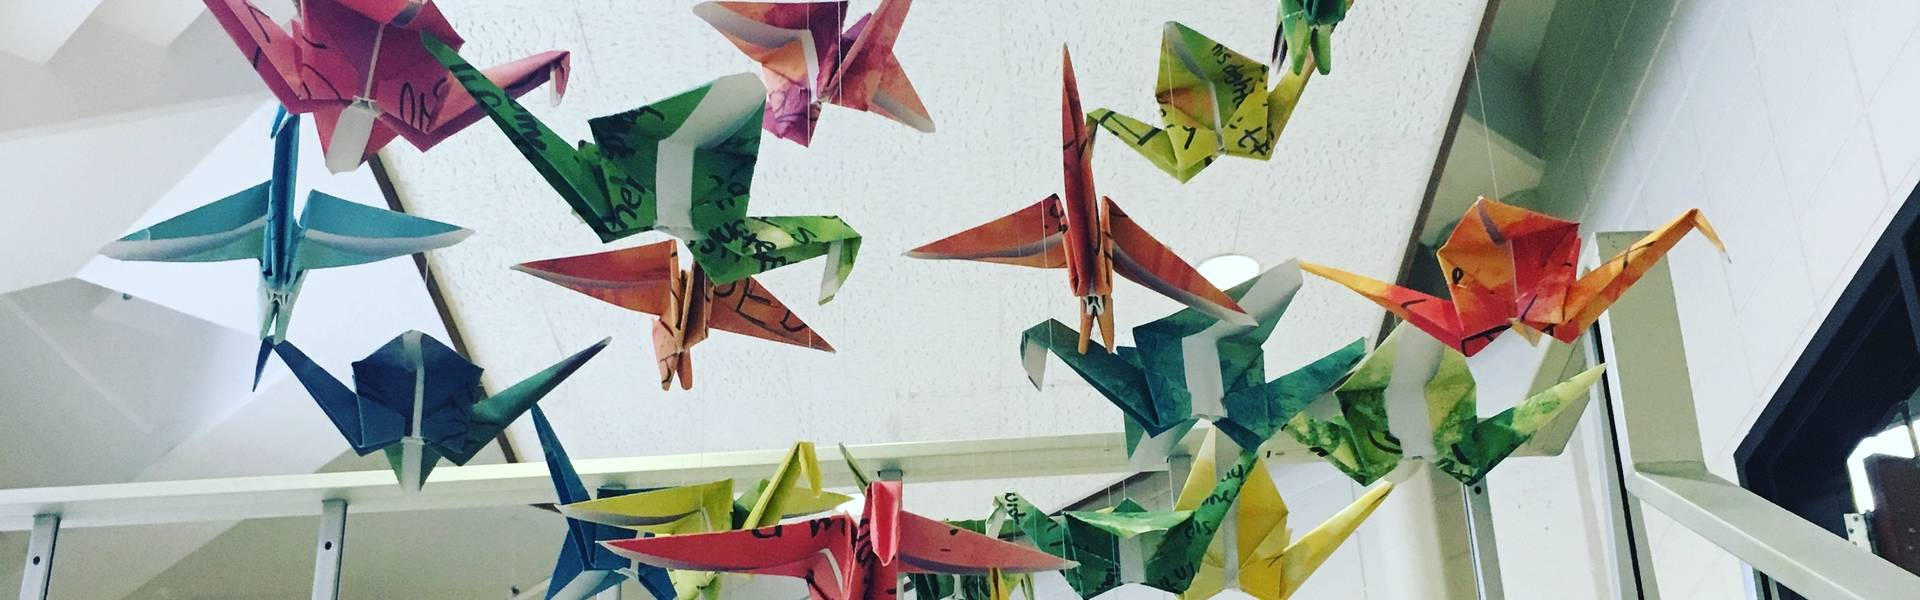 Flock of origami birds in stairwell